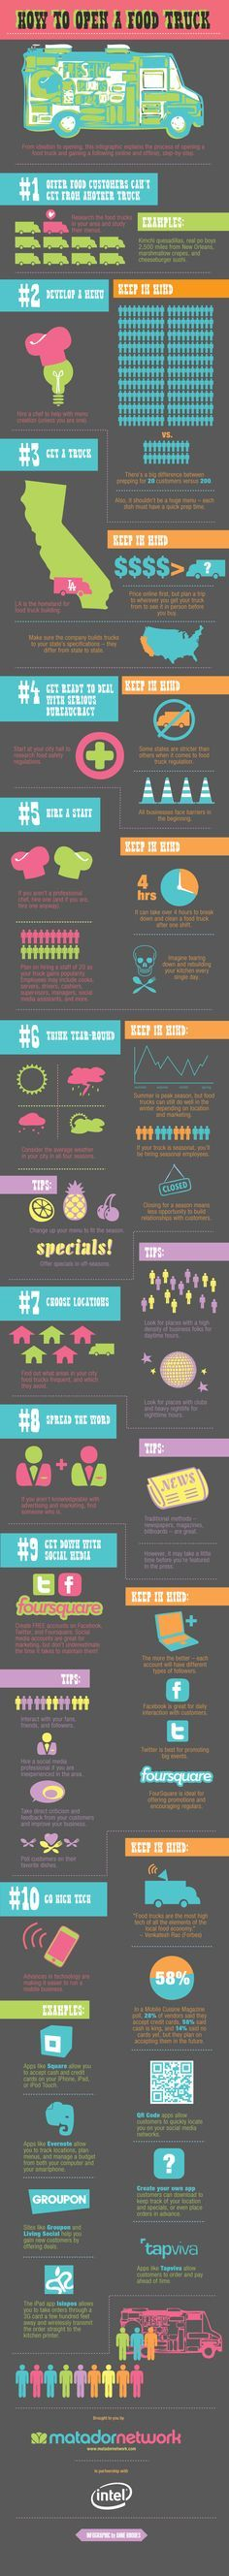 How to Open a Food Truck infographic from Matador Network.  Huzzah!